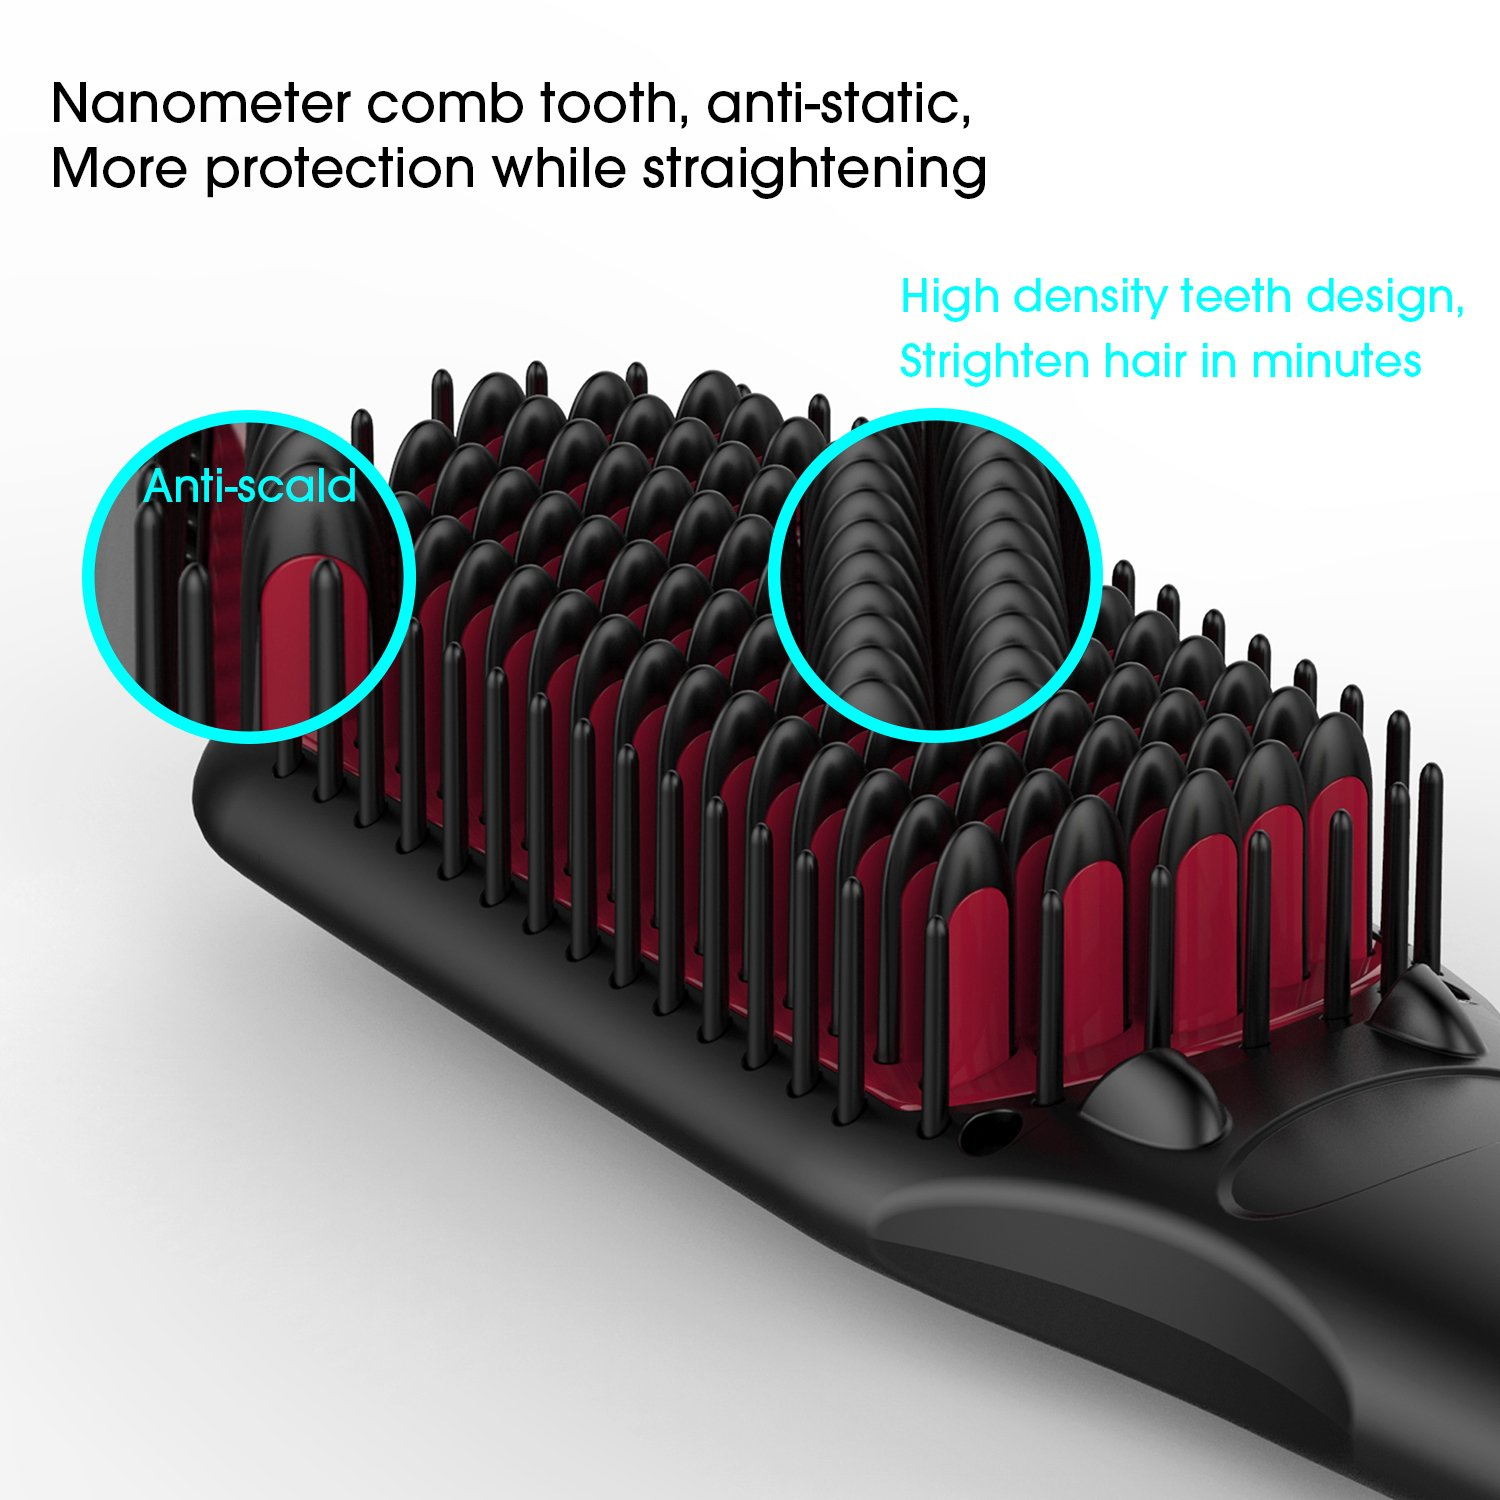 Enhanced Hair Straightener Brush by MiroPure, 2-in-1 Ionic Straightening Brush with Anti-Scald Feature, Auto Temperature Lock and Auto-off Function (Black) by MiroPure (Image #3)